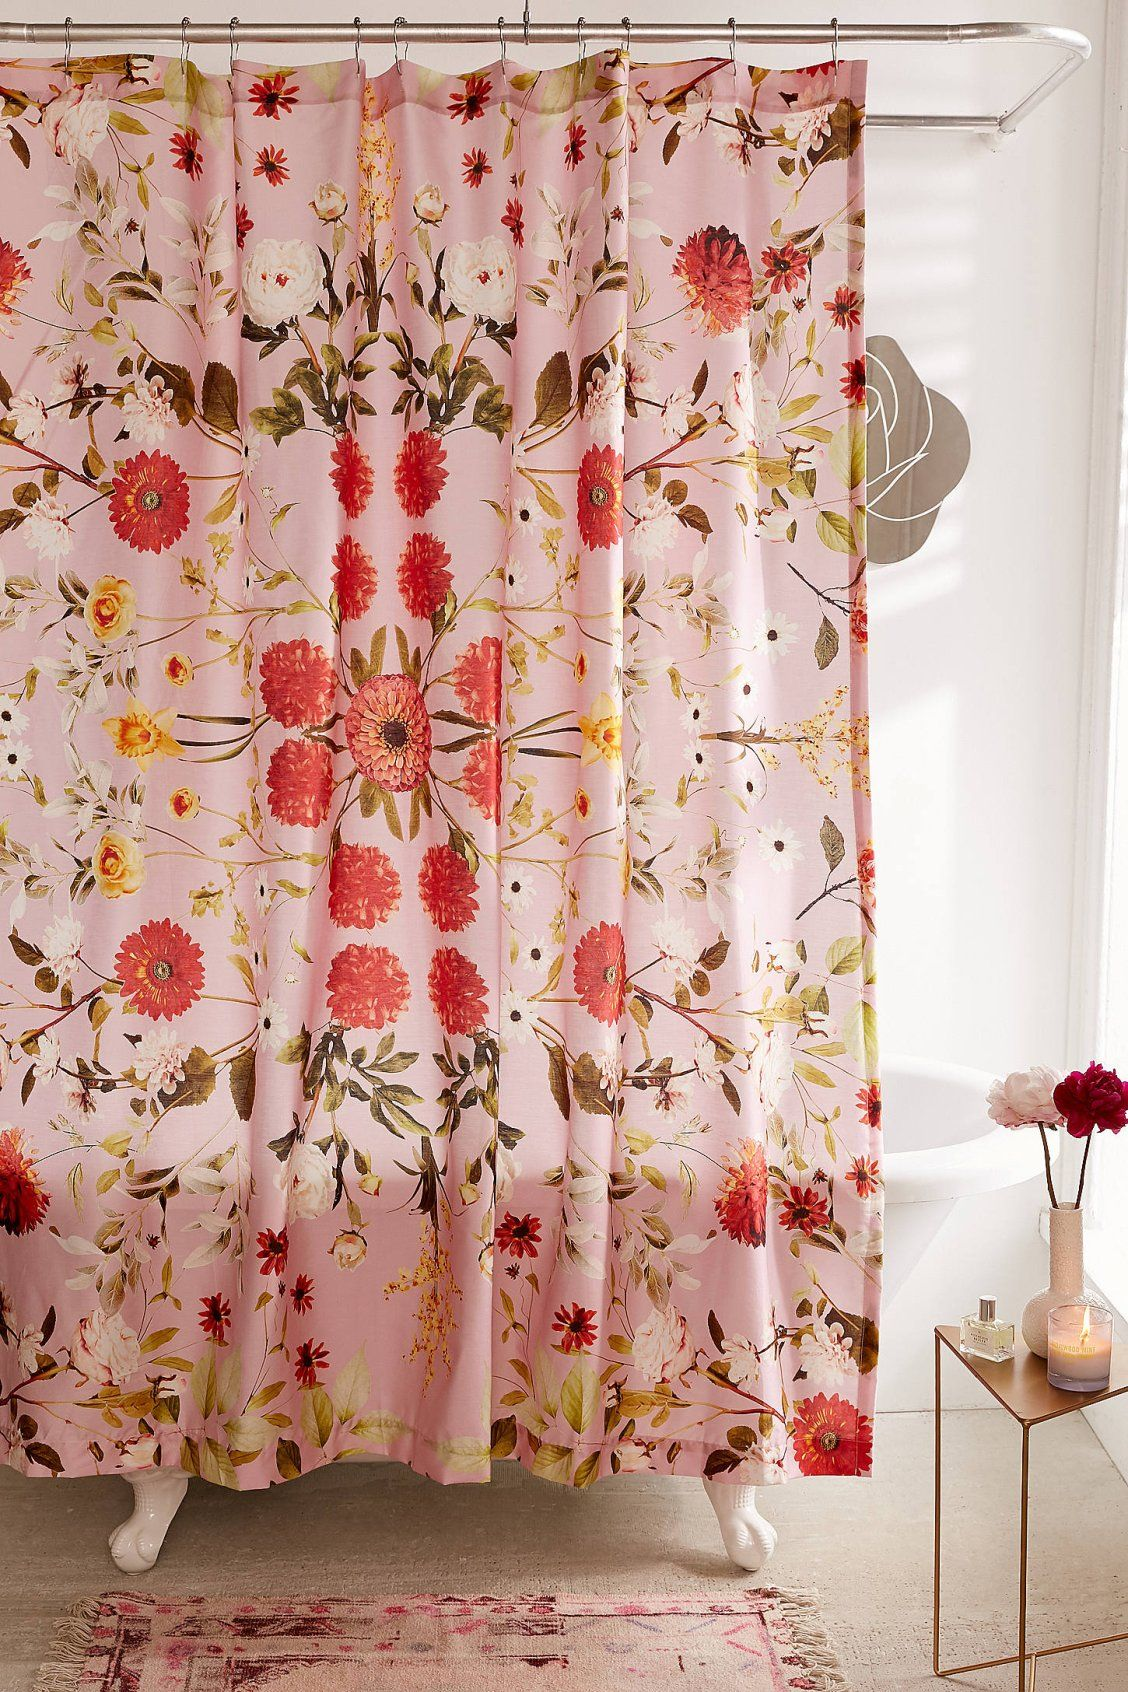 Shower Curtain Liner Floral Shower Curtains Vintage Home Decor